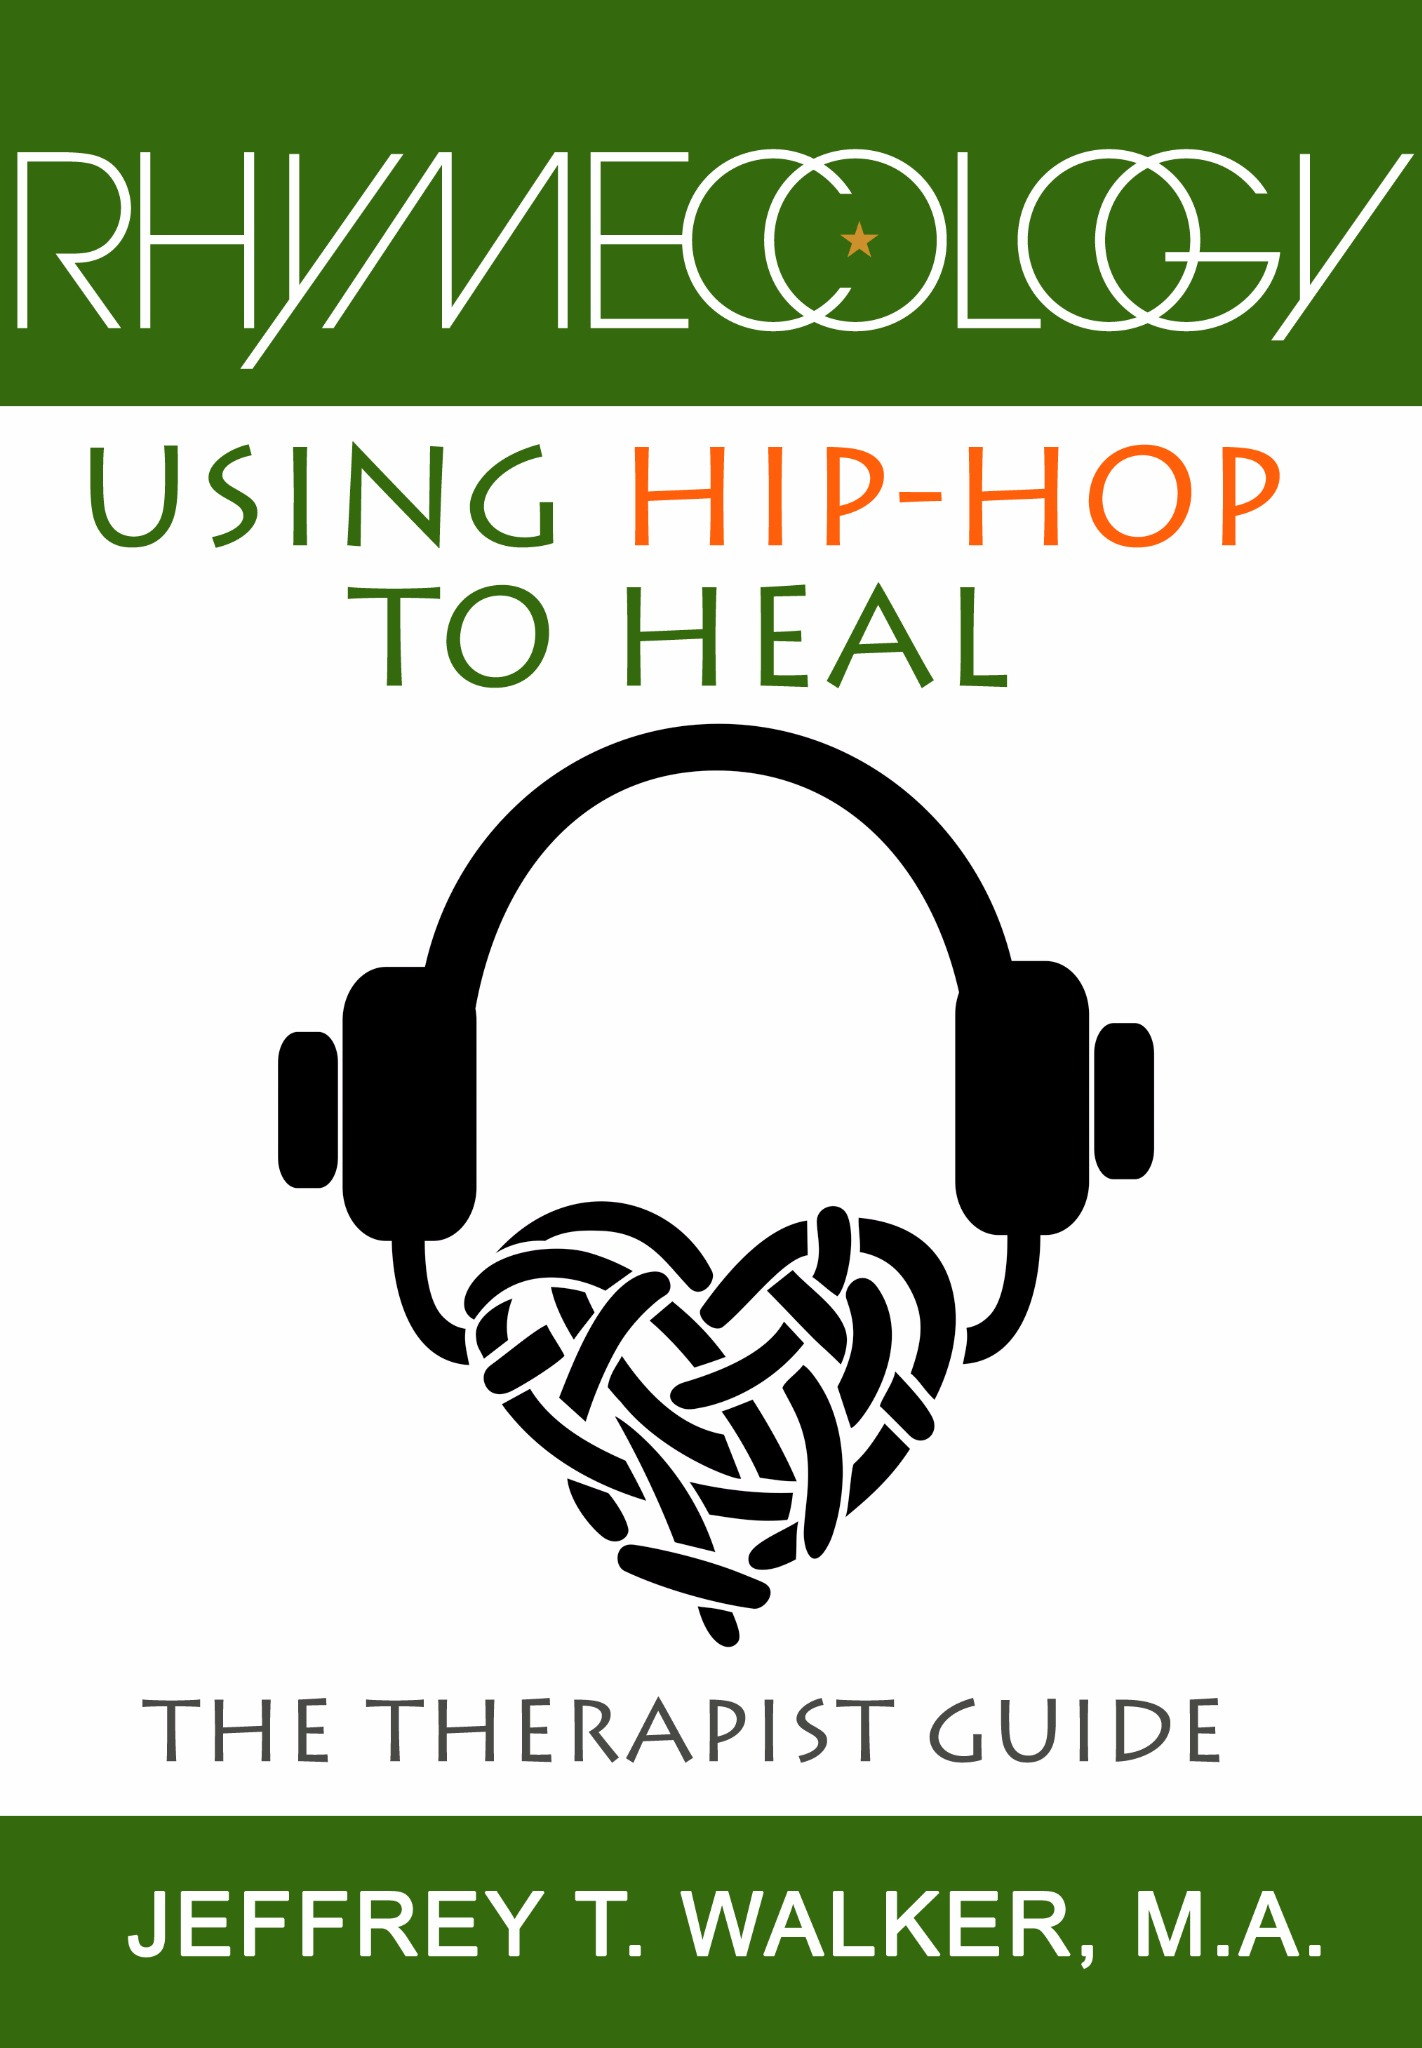 The Therapist Guide: Using Hip-Hop to Heal